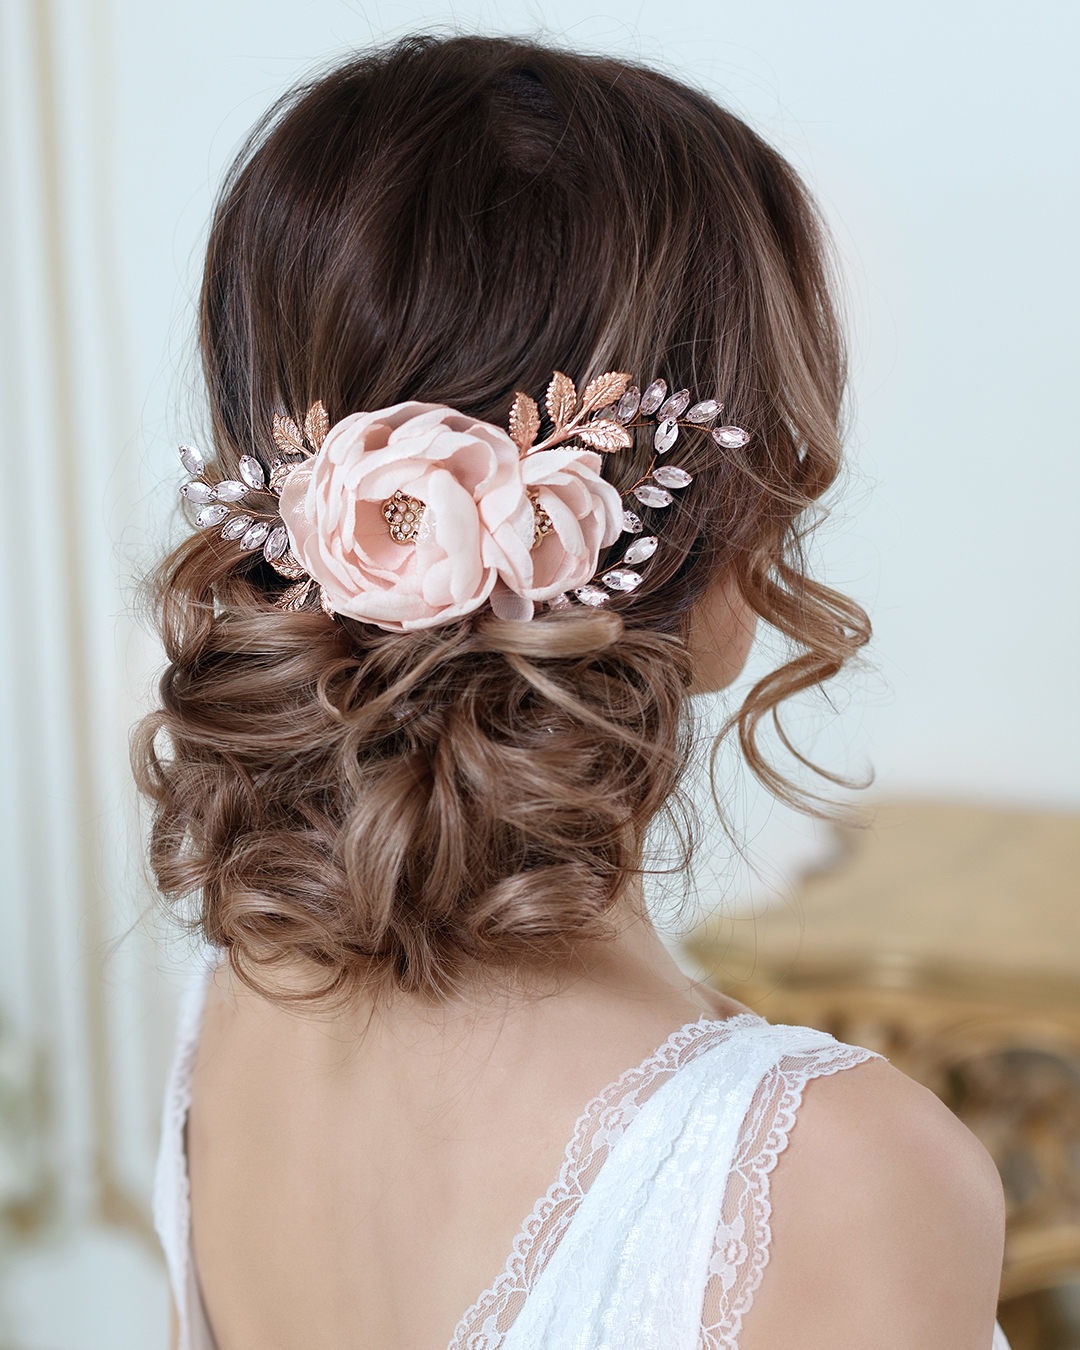 Wedding Hairstyle: 47 Stunning Wedding Hairstyles All Brides Will Love